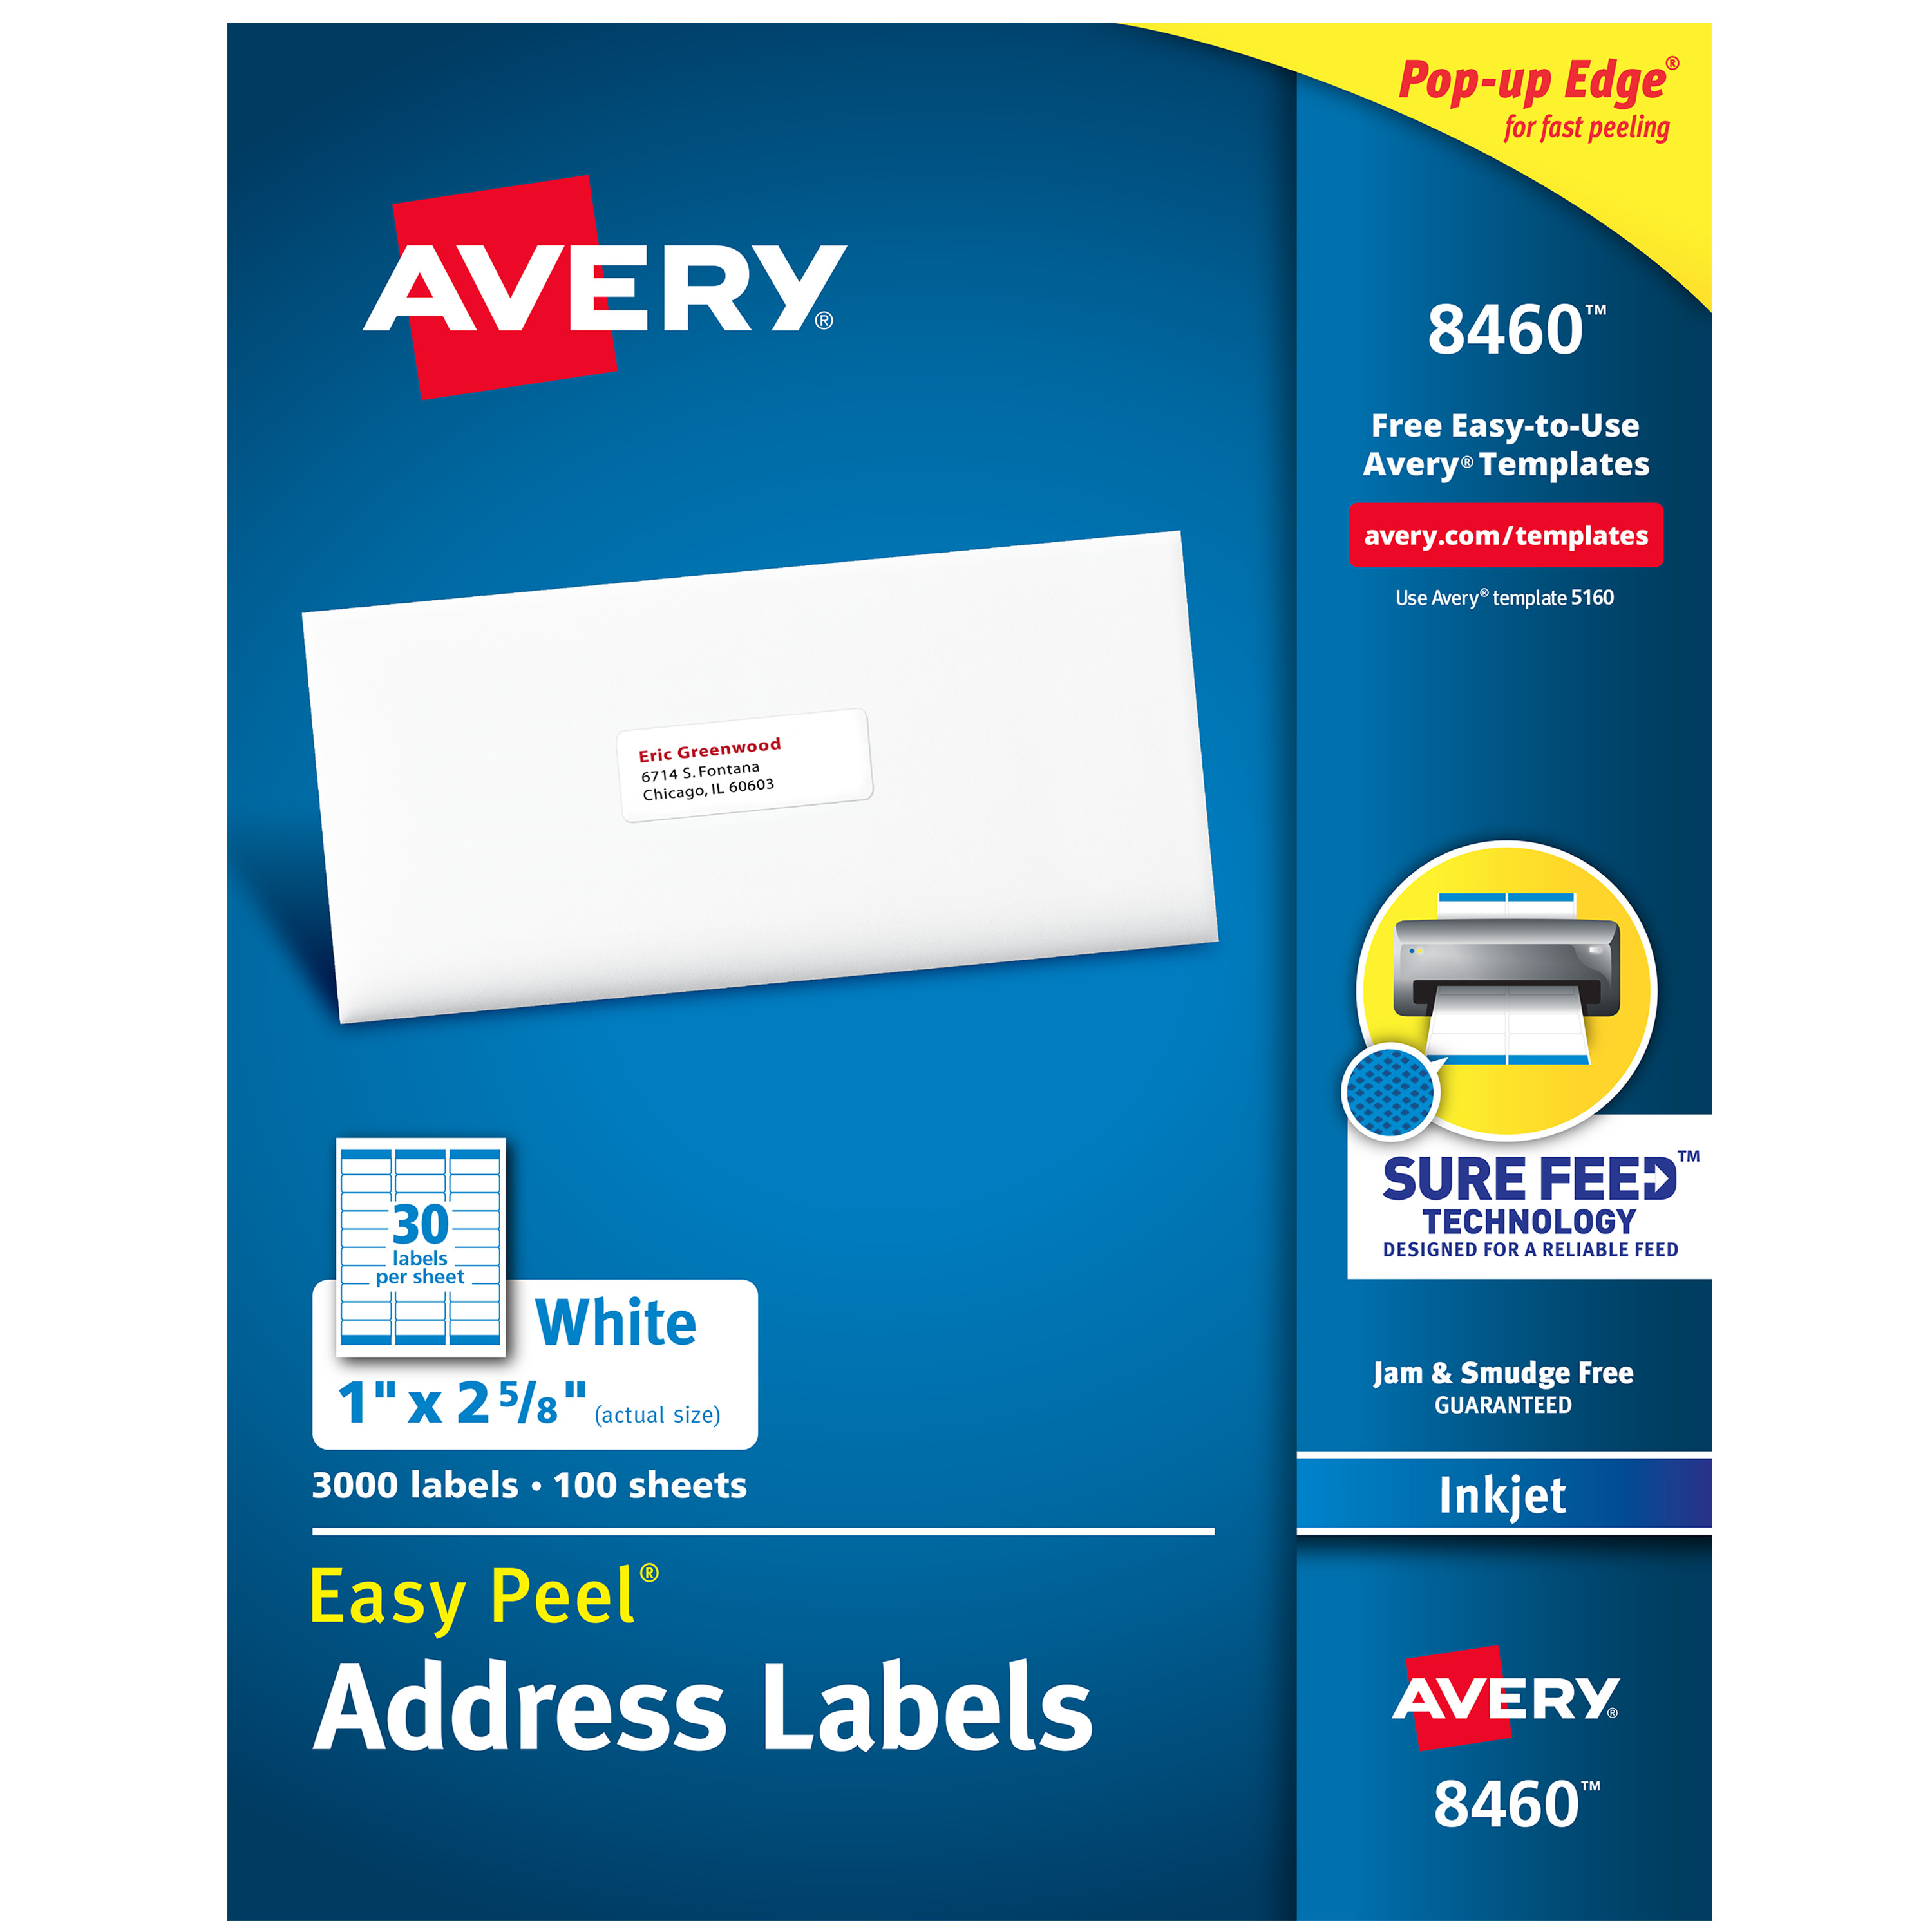 "Avery Easy Peel Address Labels, Sure Feed Technology, Permanent Adhesive, 1"" x 2-5/8"", 3,000 Labels (8460)"